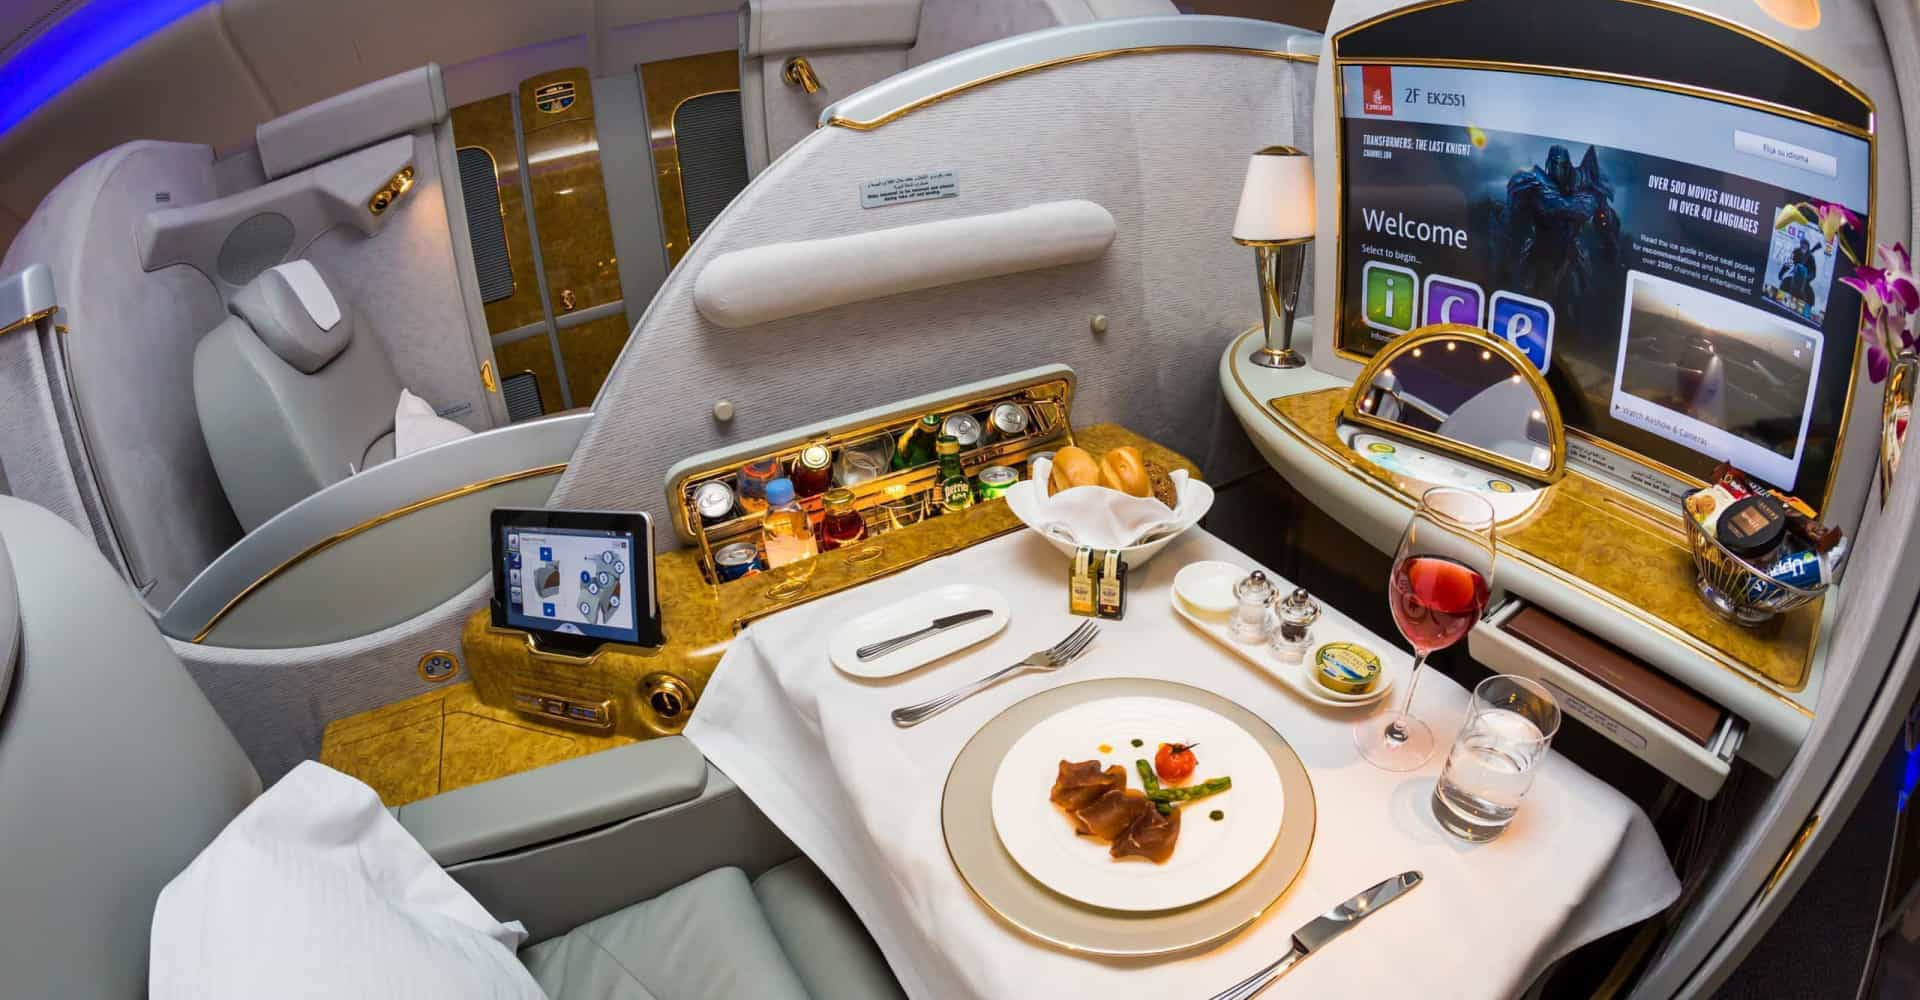 Indulging in the first-class flying experience